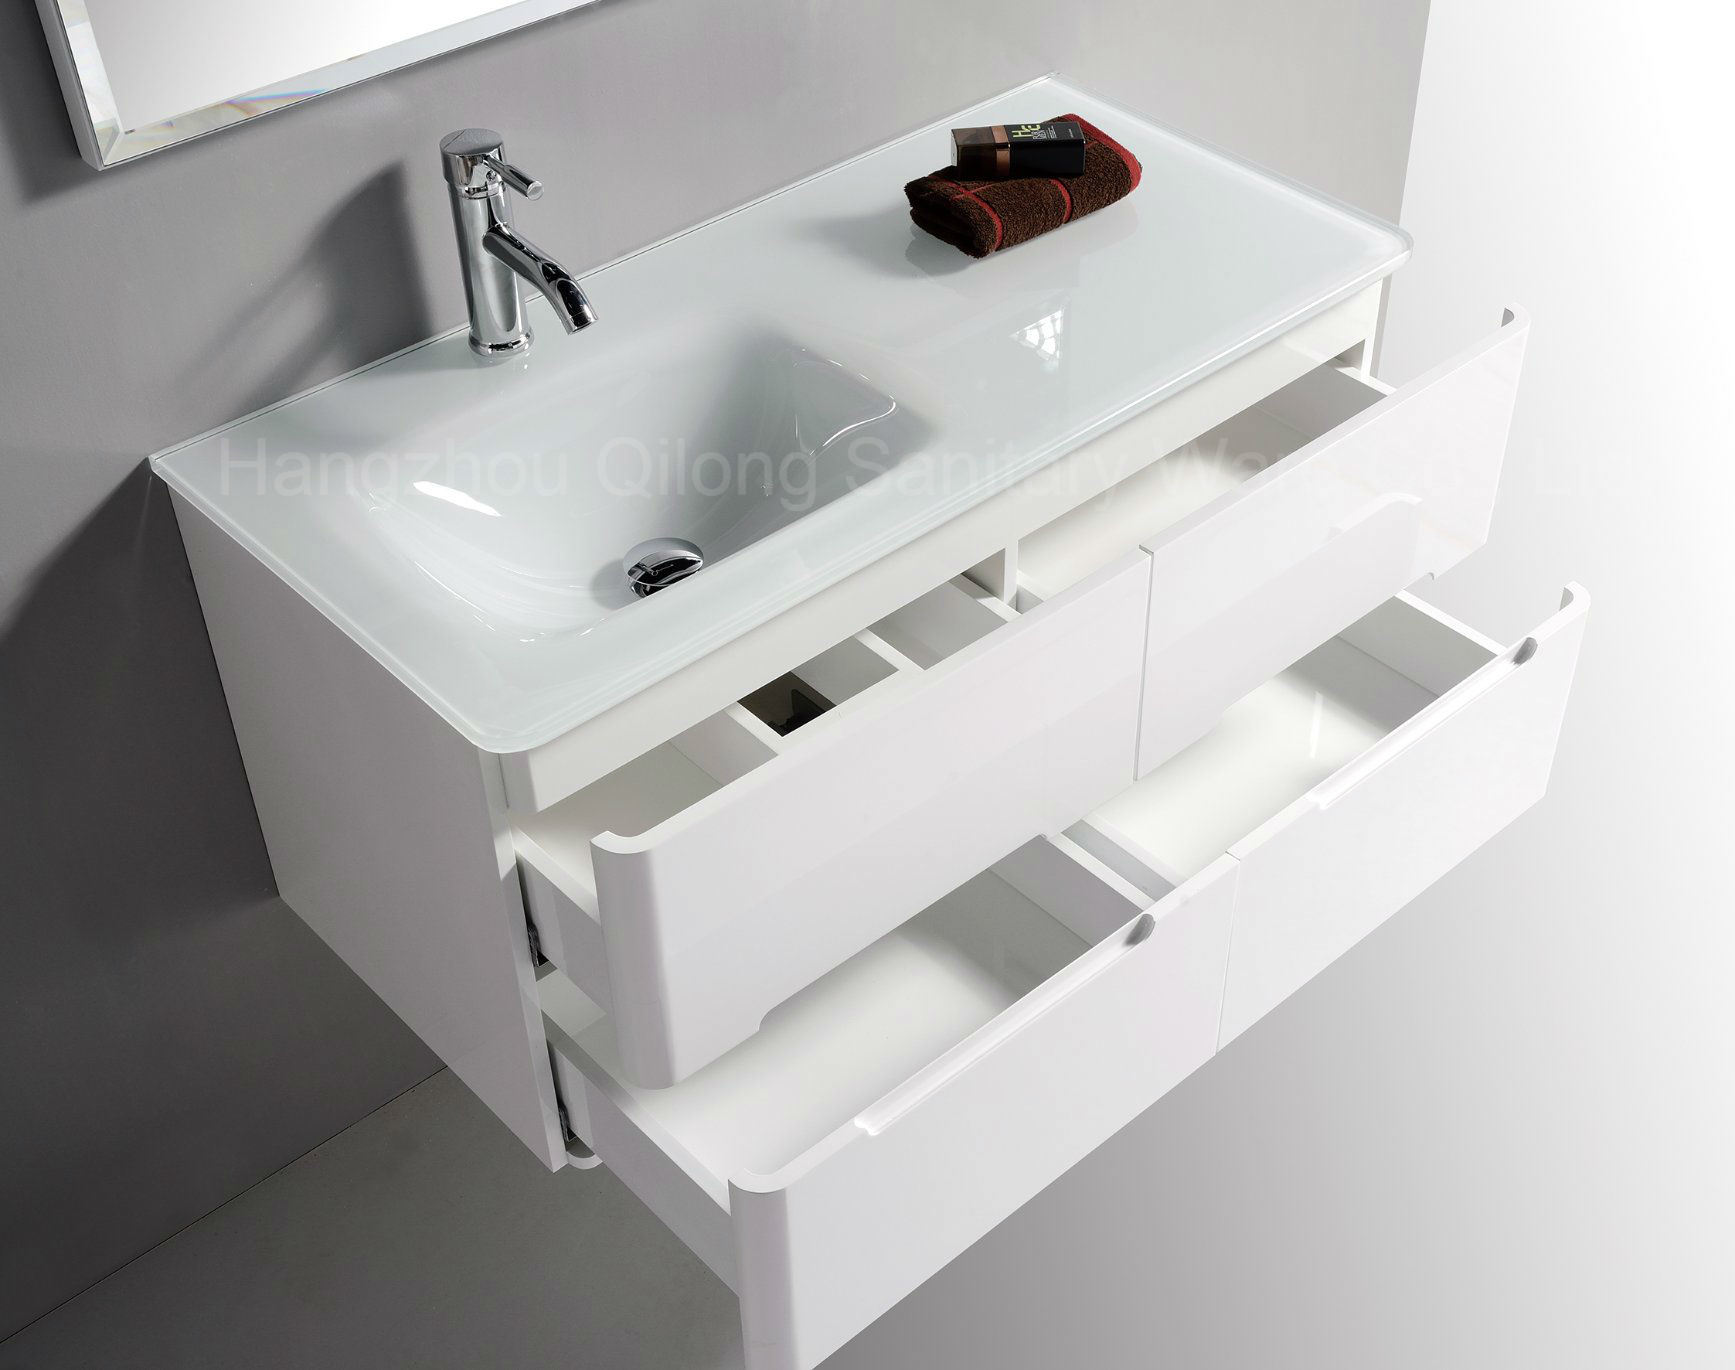 Four Drawers PVC Bathroom Cabinet with Left/ Right Basin